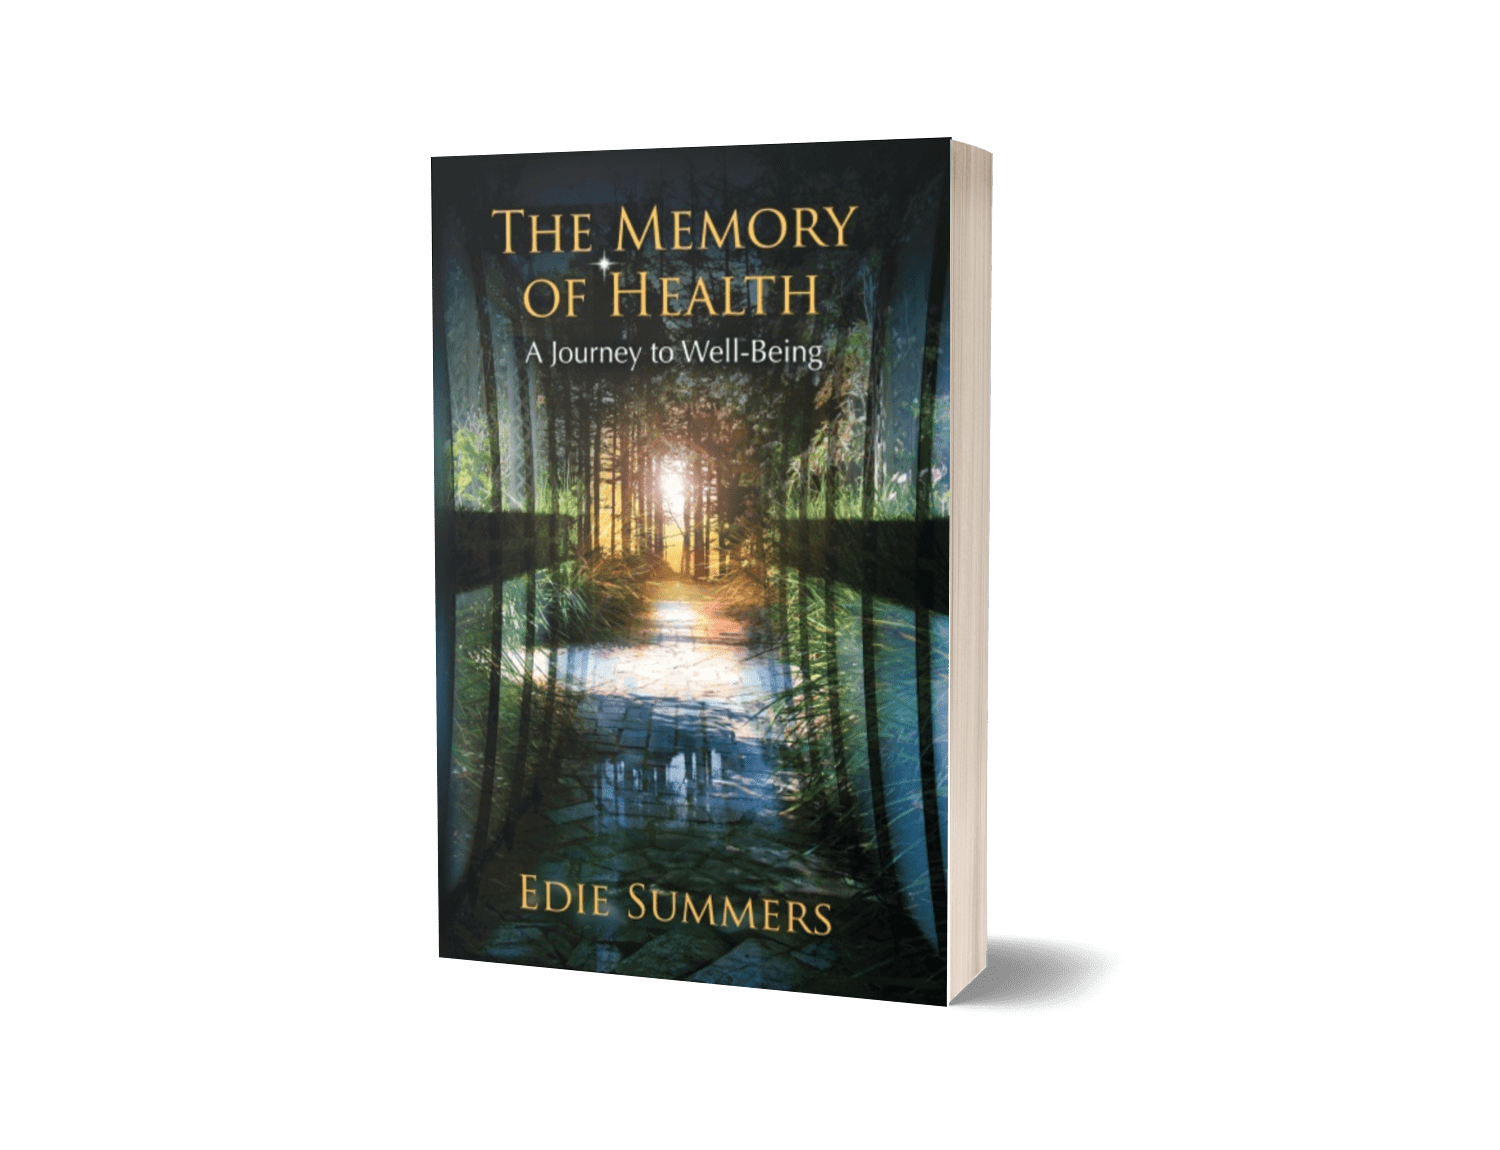 The Memory of Health